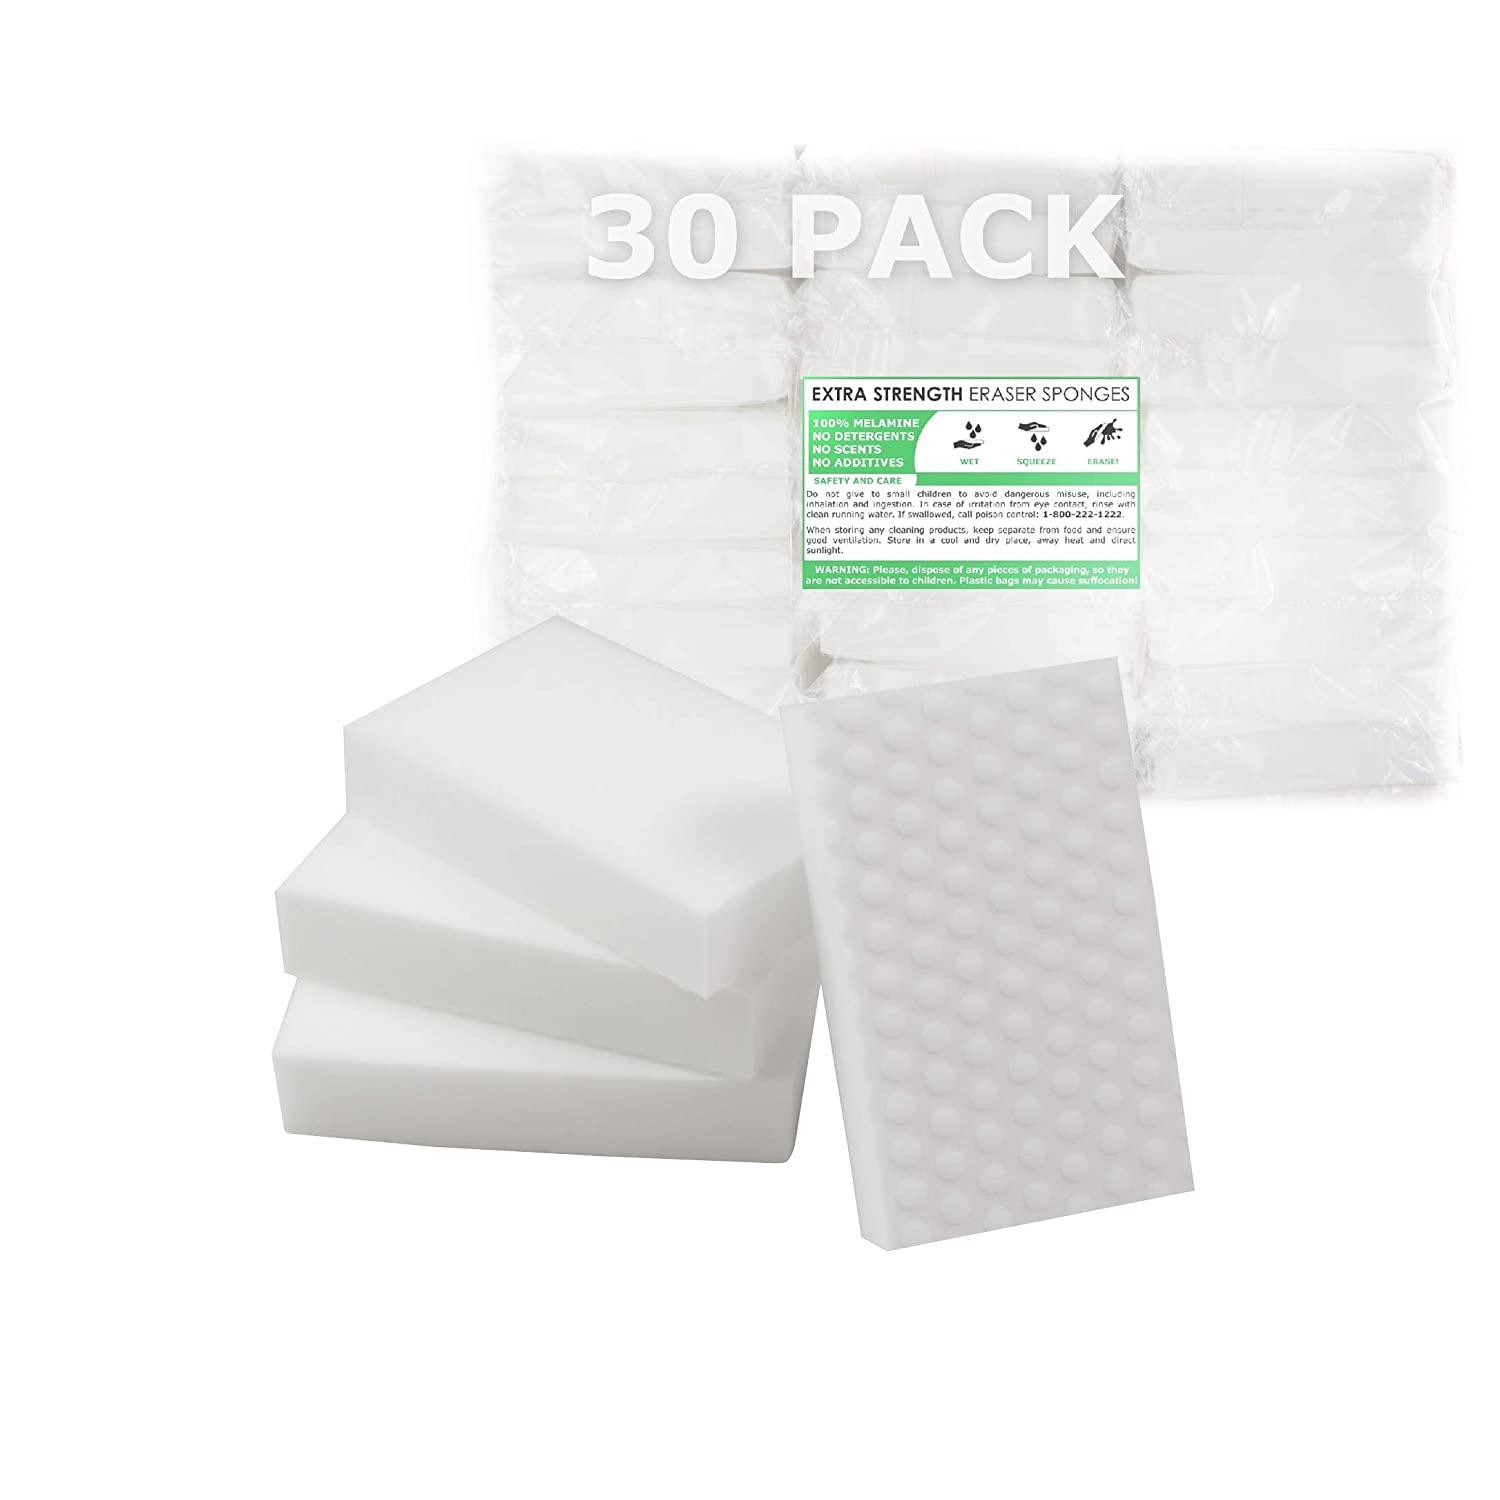 EXTRA STRENGTH Value Deal, MAGIC SPONGE CLEANERS ERASER PADS - WHITE - ALL PURPOSE - LONG LASTING (30 XS Eraser Pack) AX-AY-ABHI-90539